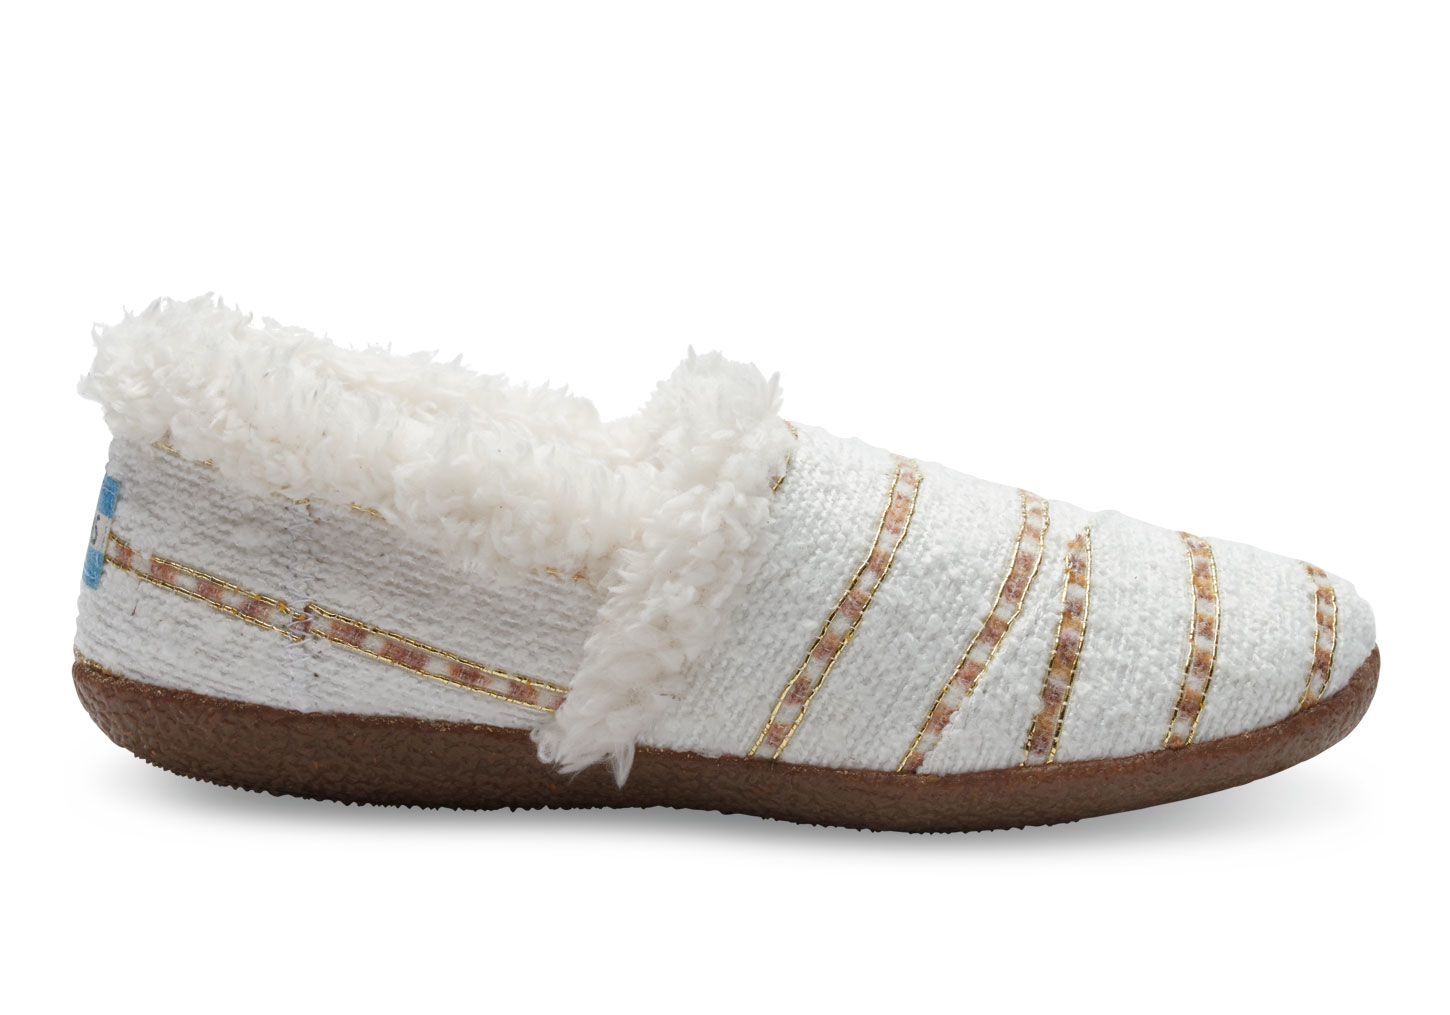 White Womens Slippers Sale: Save Up to 30% Off! Shop nichapie.ml's huge selection of White Slippers for Women - Over 25 styles available. FREE Shipping & Exchanges, and .